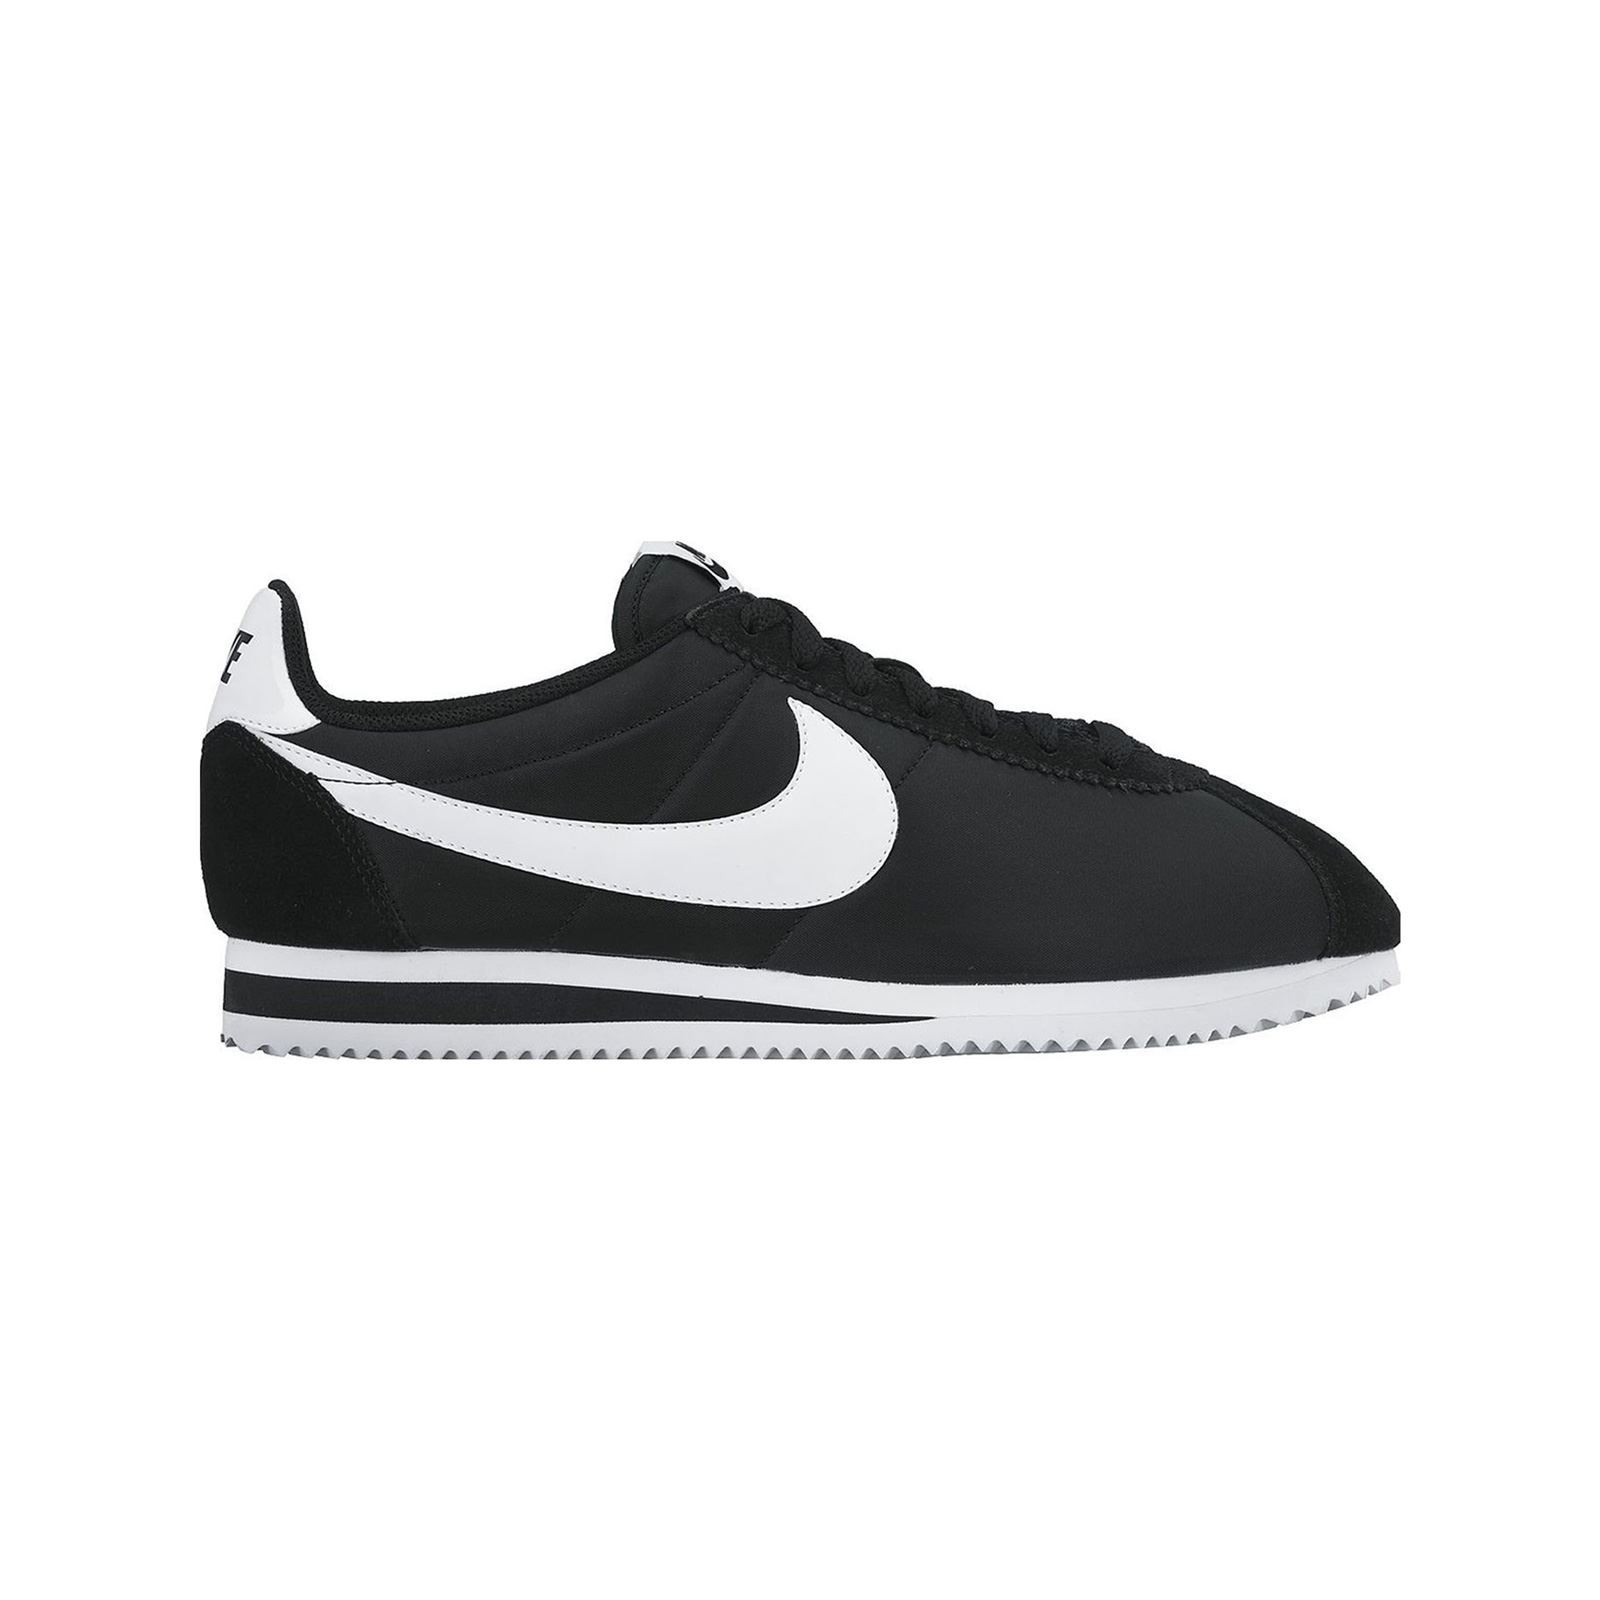 nike classic cortez turnschuhe sneakers schwarz. Black Bedroom Furniture Sets. Home Design Ideas